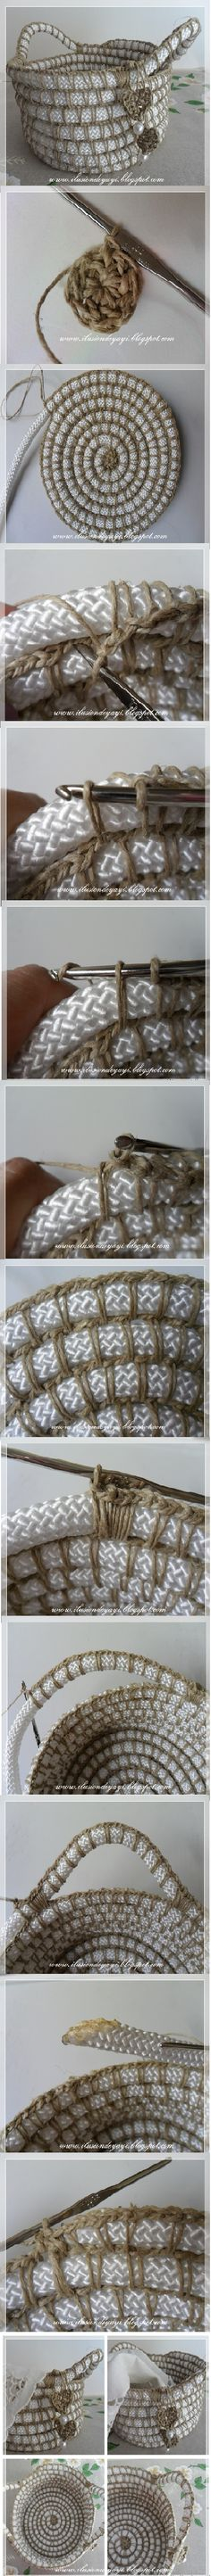 Crochet and rope basket (tutorial)